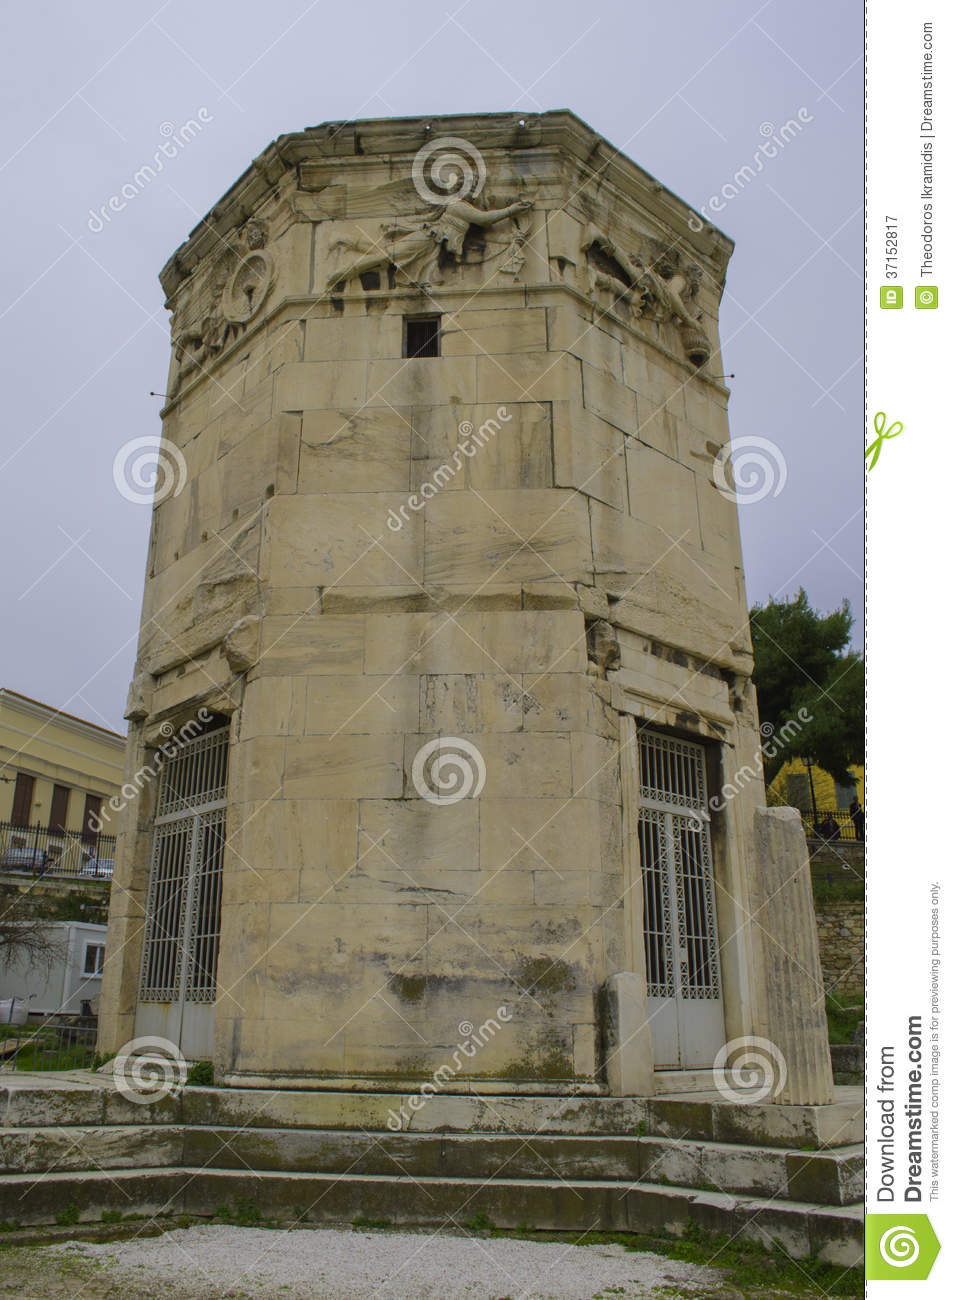 Tower Of The Winds Royalty Free Stock Photography - Image ...